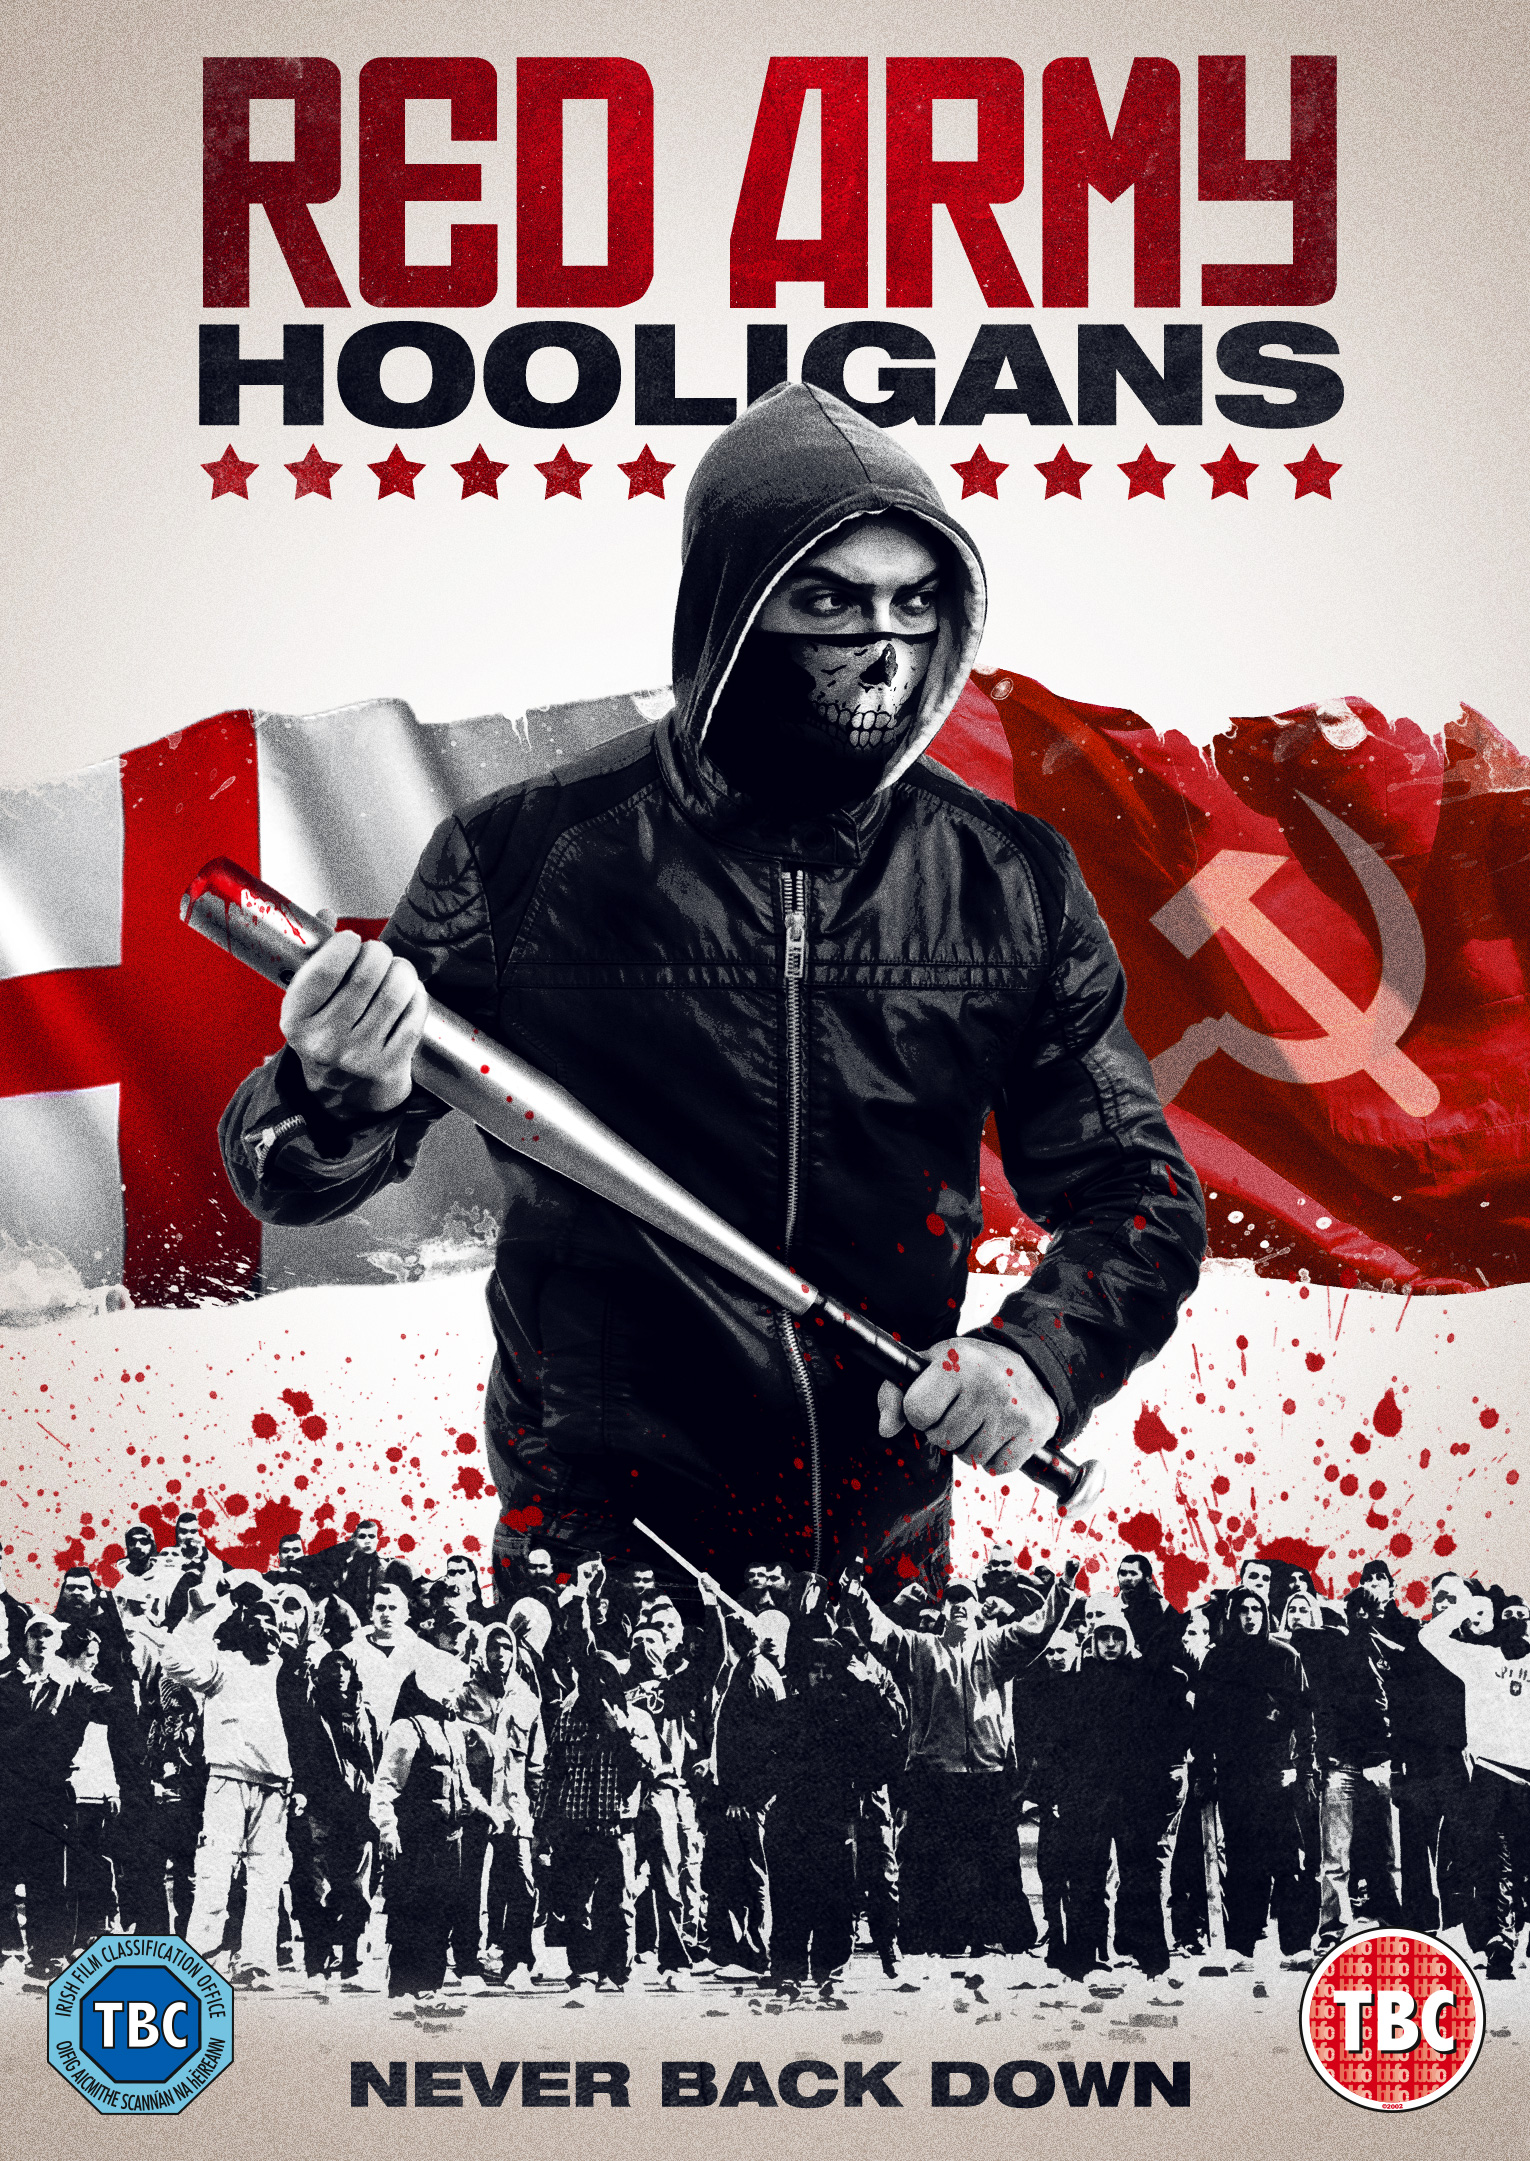 Hooligans (2005) Gratuit | streaming film gratuit vf